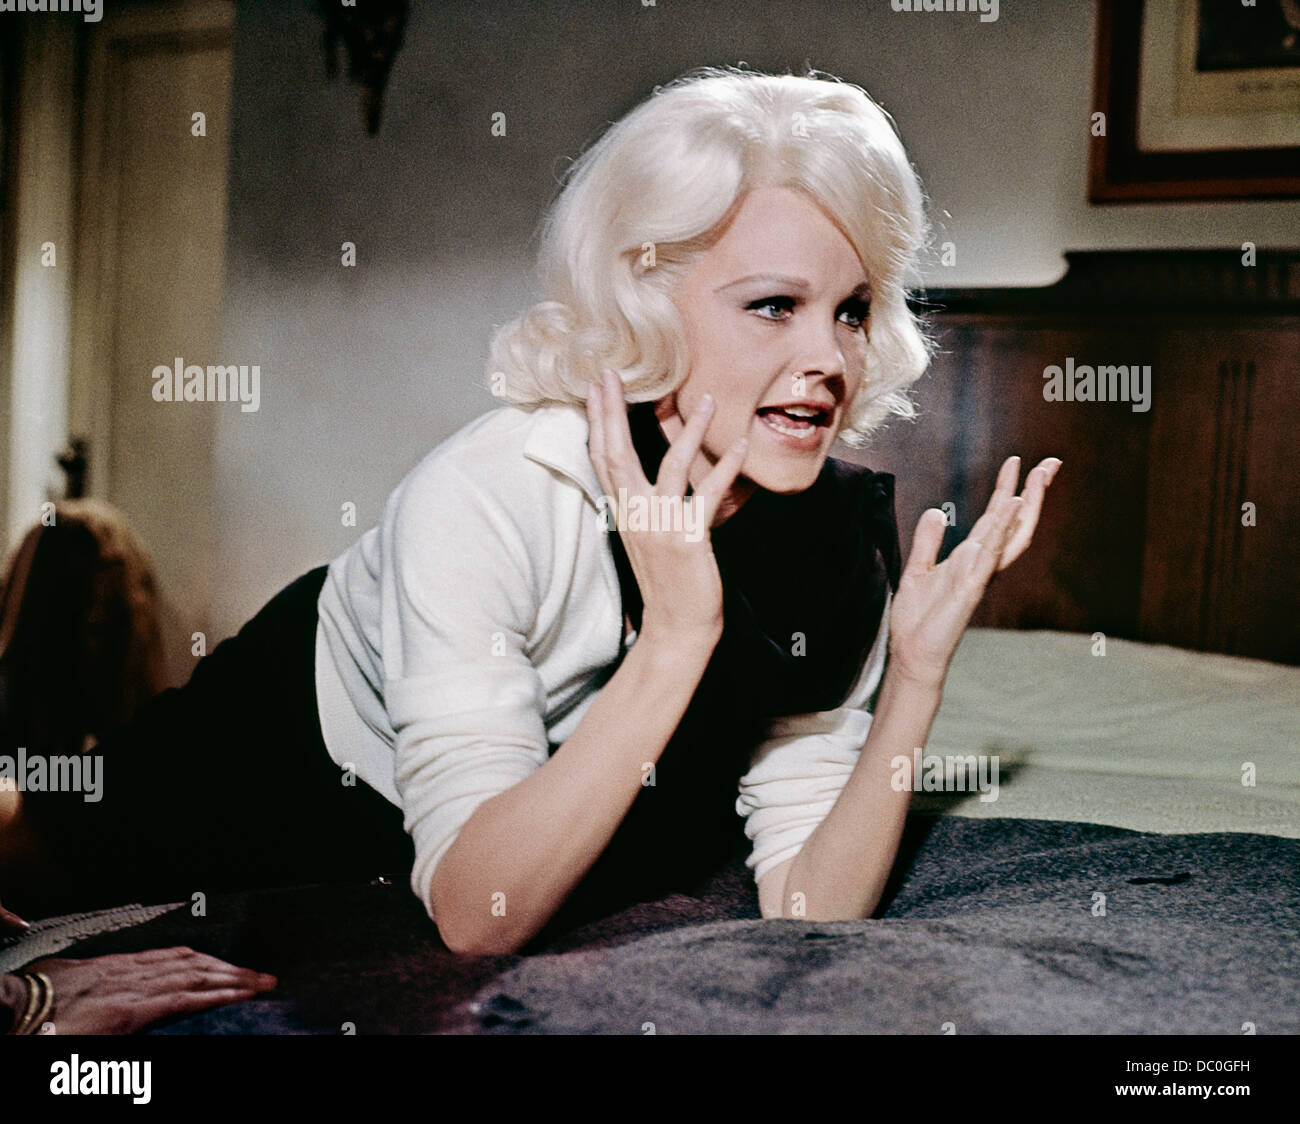 1960s 1965 BIOPIC HARLOW CARROLL BAKER AS JEAN HARLOW THE 1930s ACTRESS - Stock Image